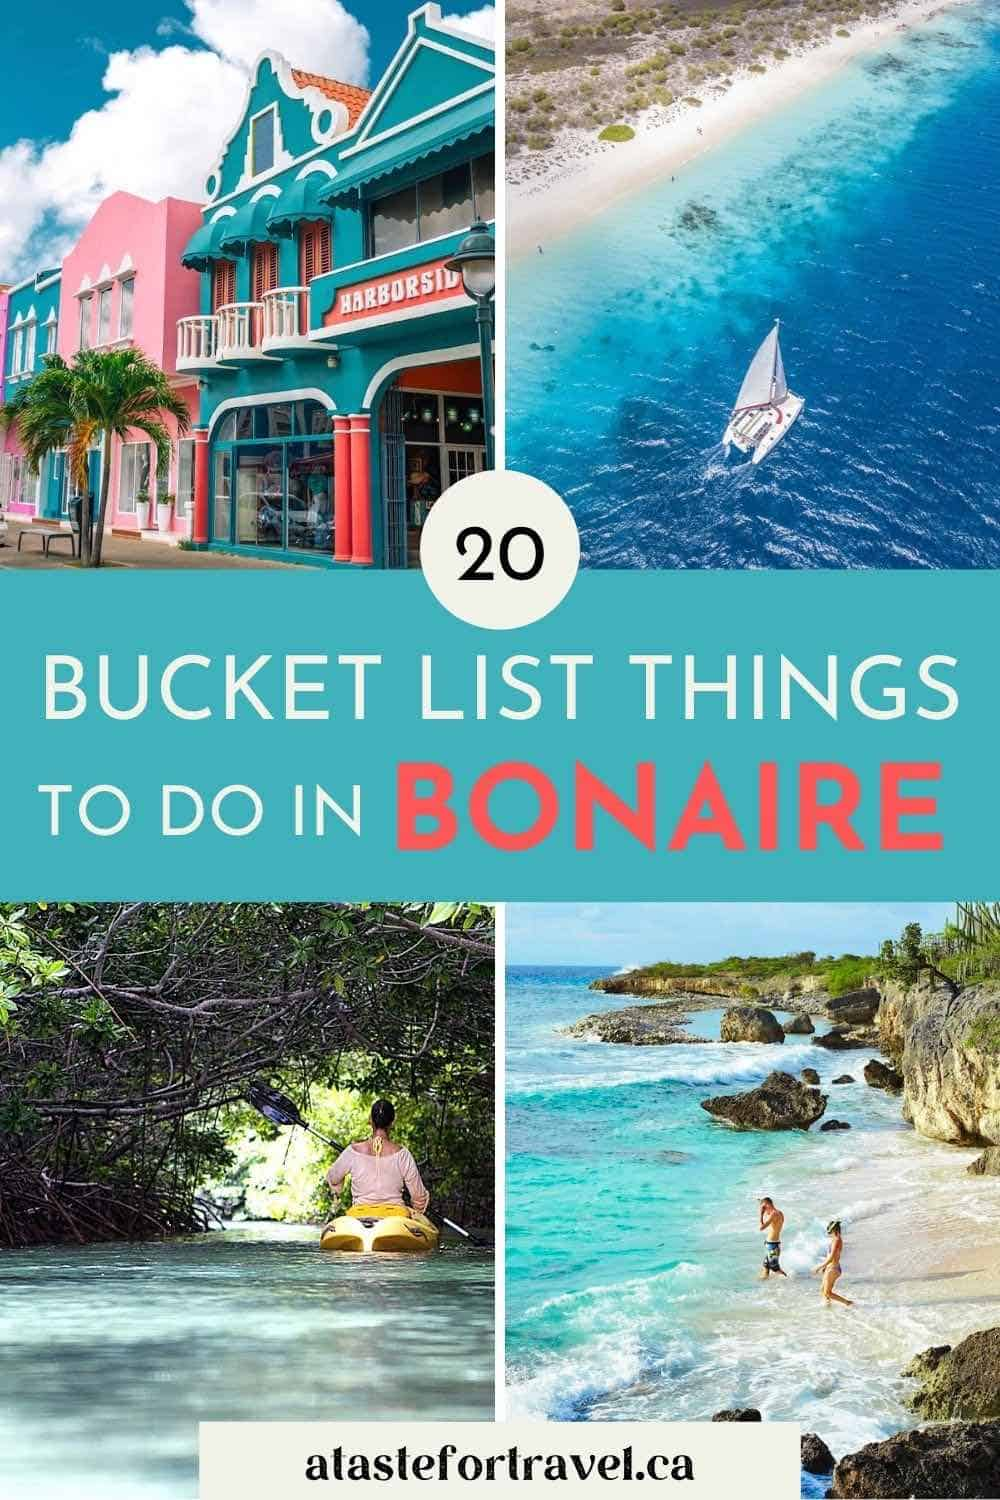 Collage of images of Bonaire for Pinterest.